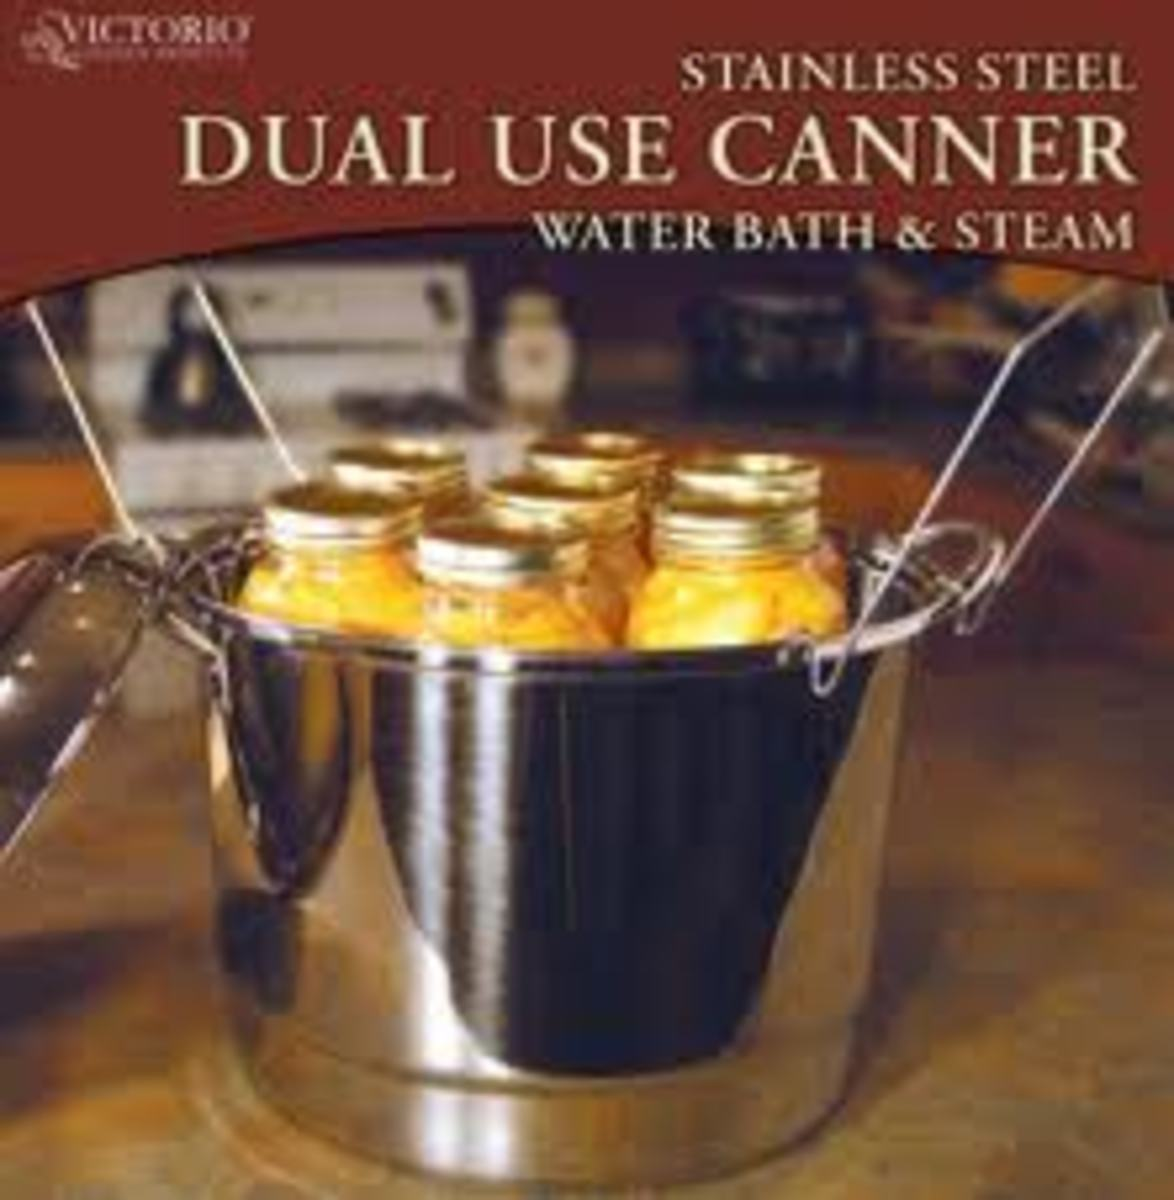 Many prefer the hot water bath canning method.